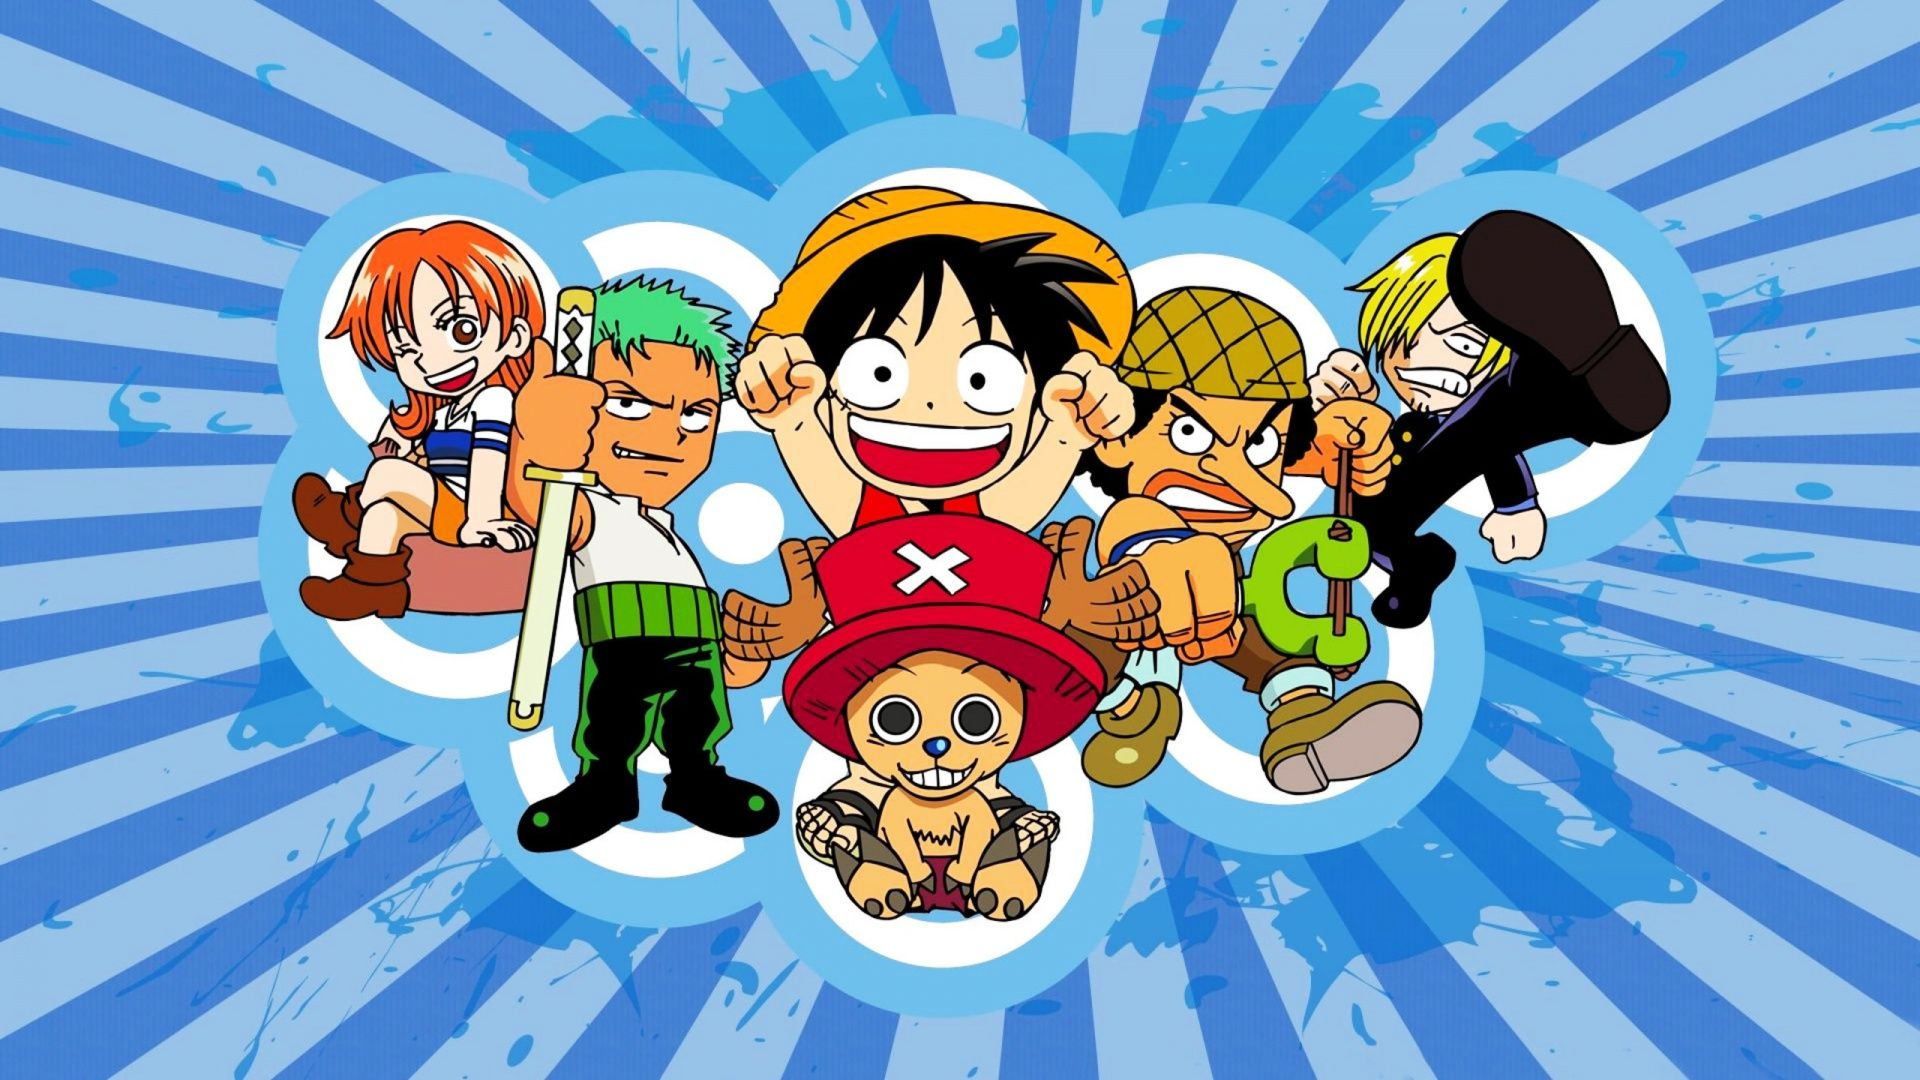 One Piece Wallpapers 1080p One Piece Anime Wallpapers One Piece Anime Anime Wallpaper